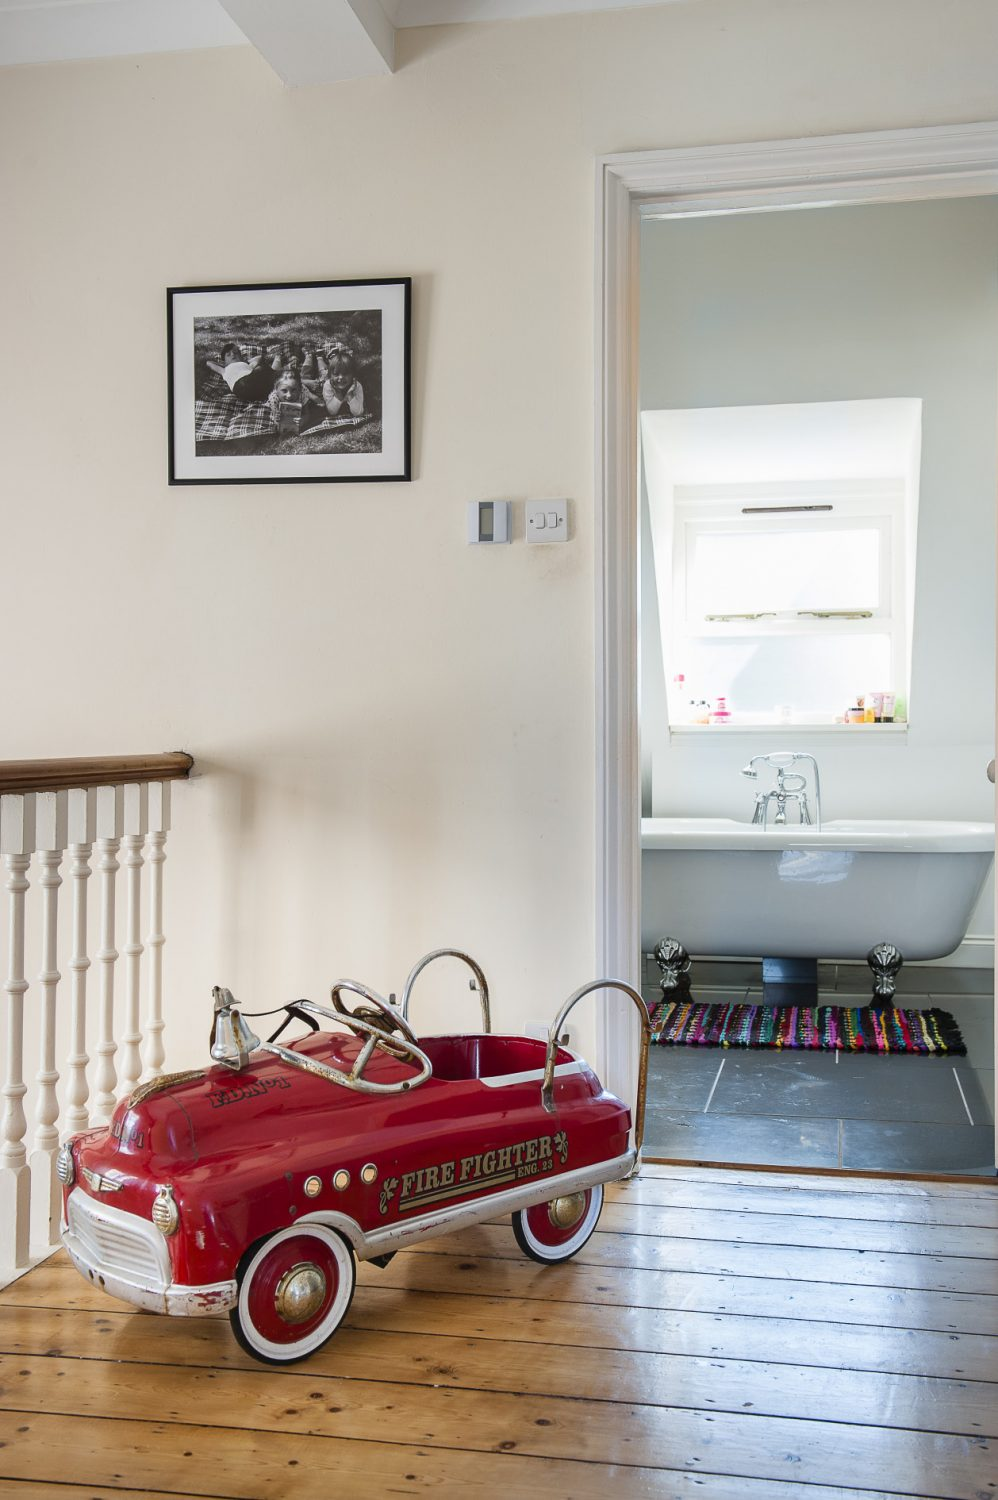 The children have the top storey of the house to themselves. The vintage firefighters' truck is from London Road Antiques, in St Leonards